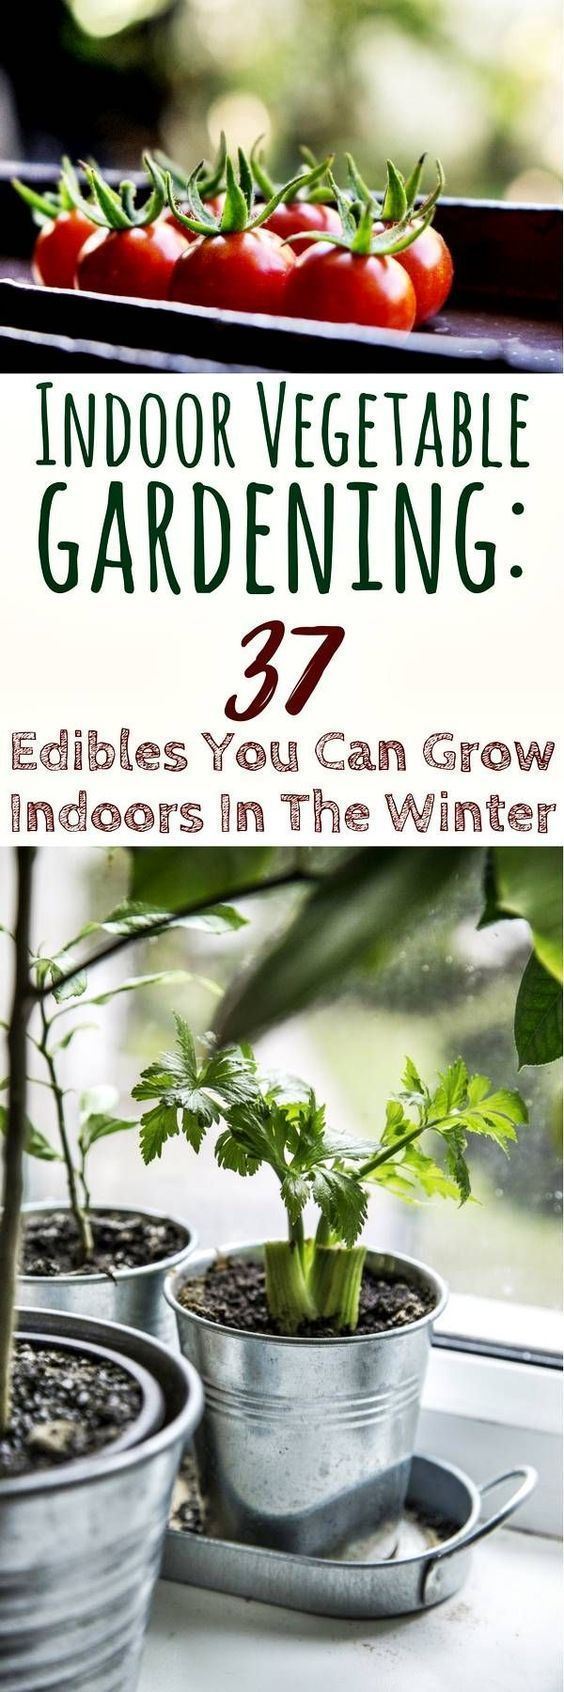 Indoor Vegetable Gardening: 37 Edibles You Can Grow Indoors In The Winter - As a.... ** Discover more at the image link #indoorgarden #gardening #wintergarden #containergarden